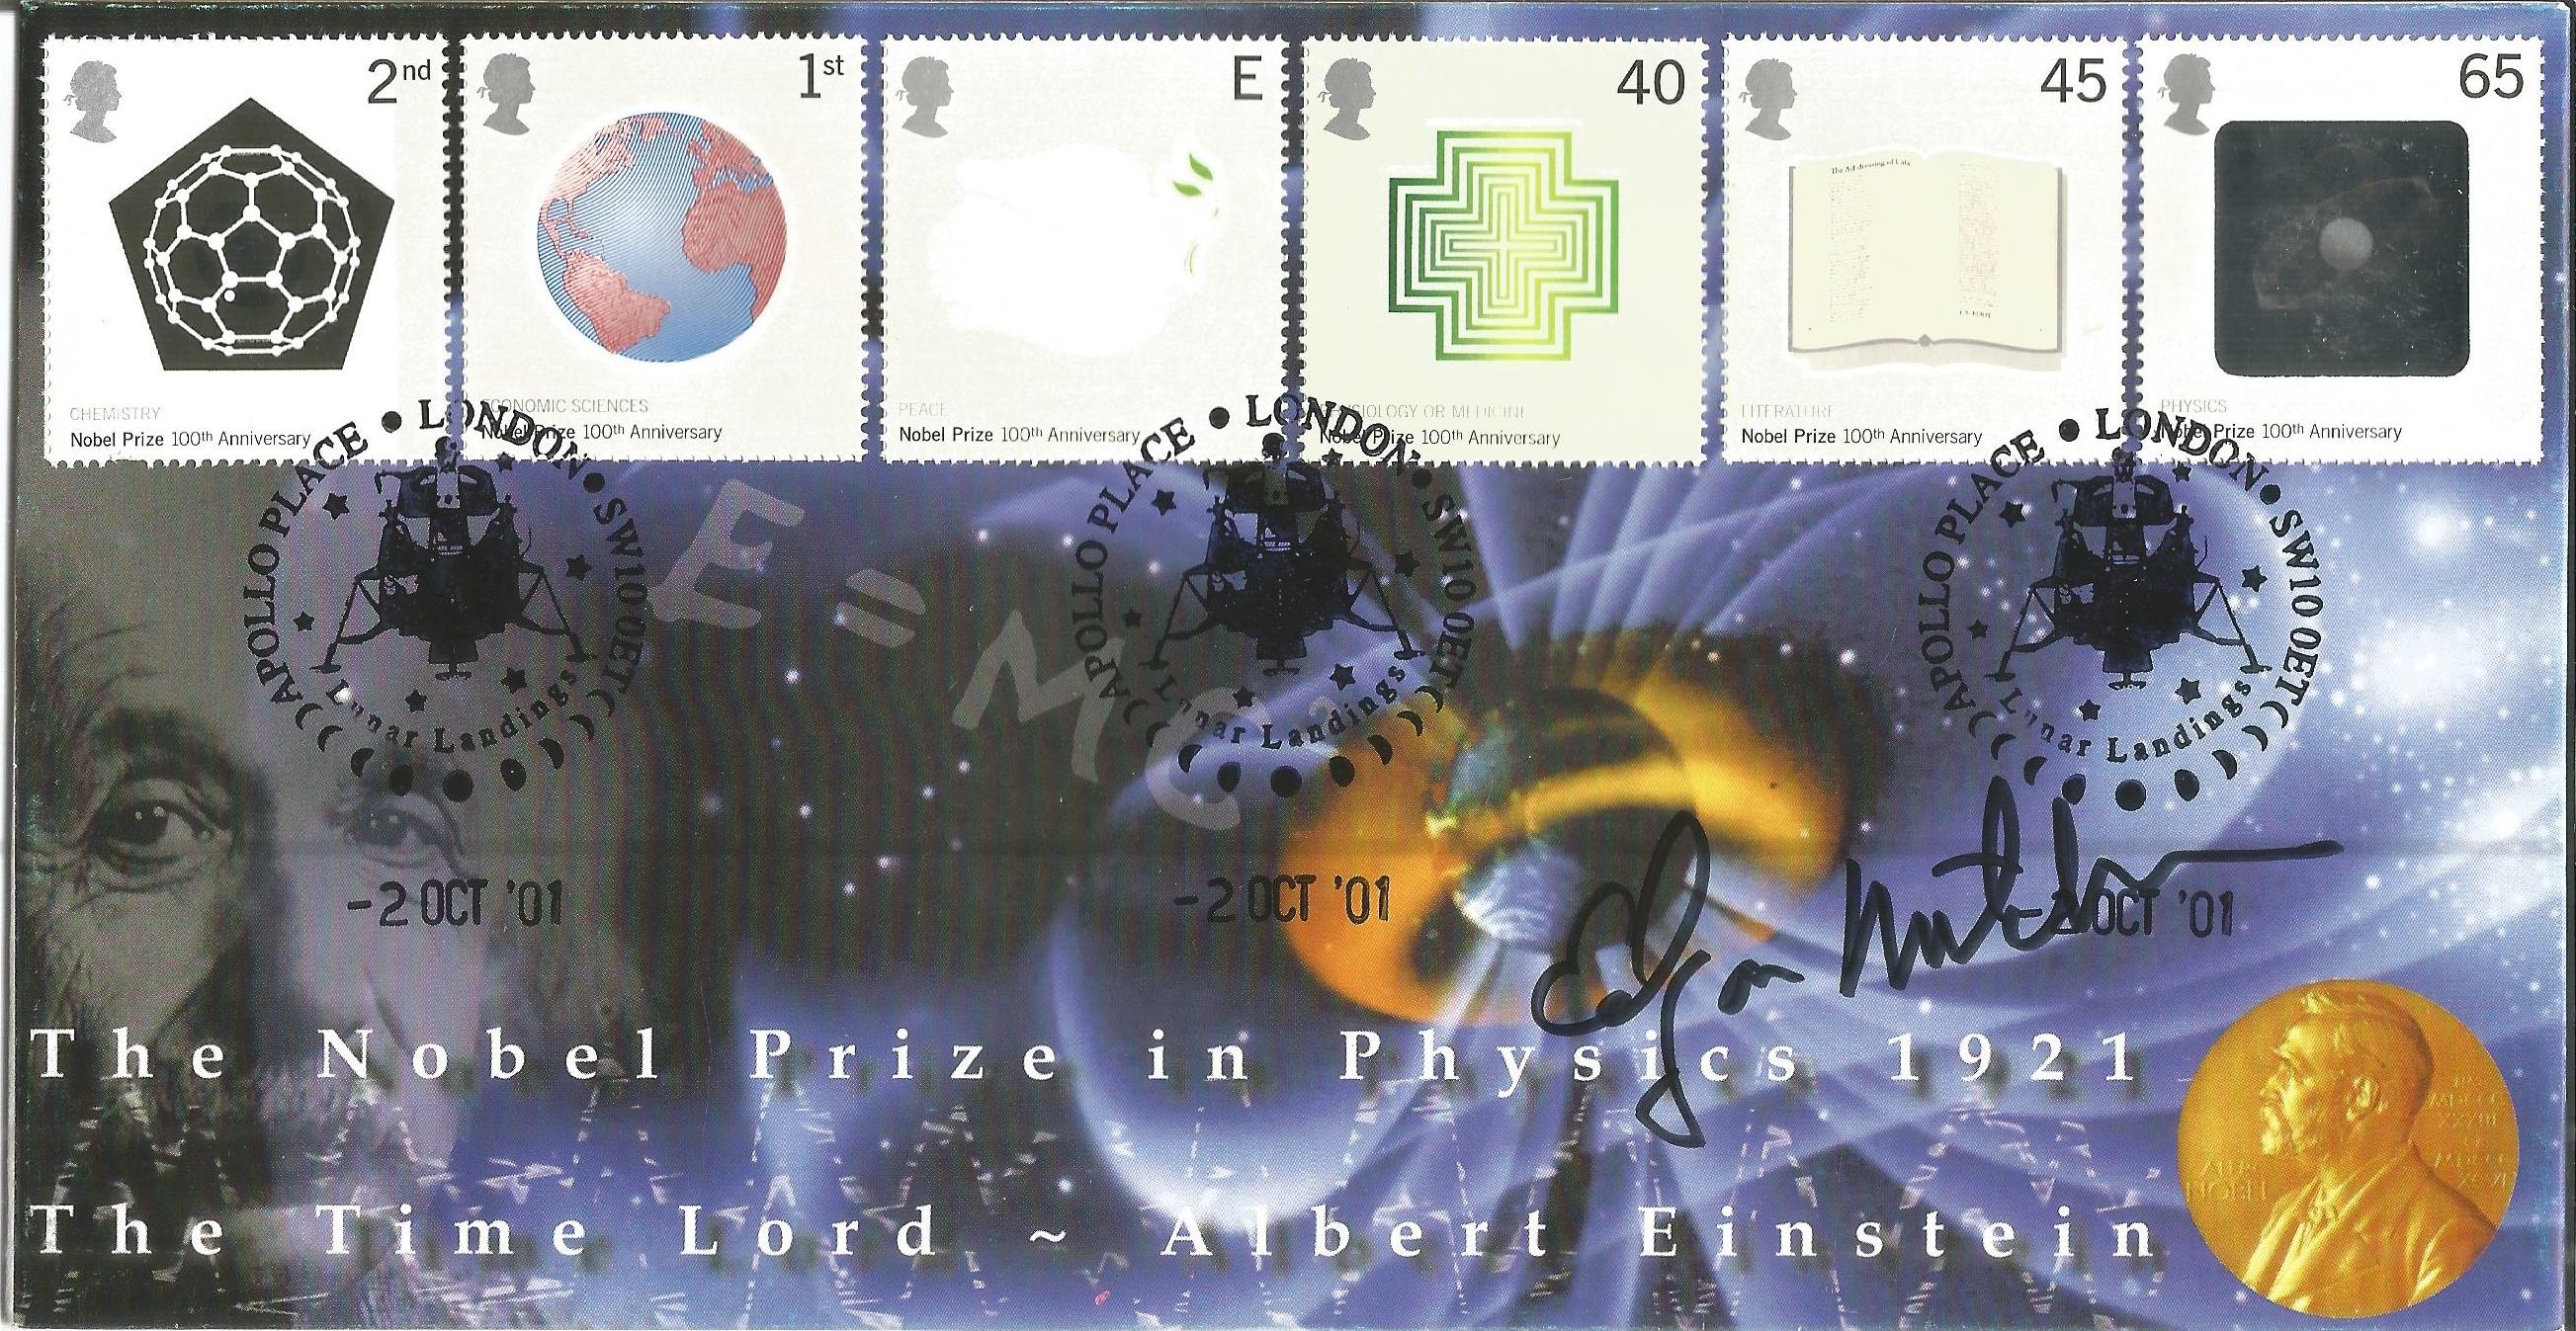 Space Moonwalker Dr Edgar Mitchell NASA Astronaut signed Internetstamps official FDC 2007 Space.